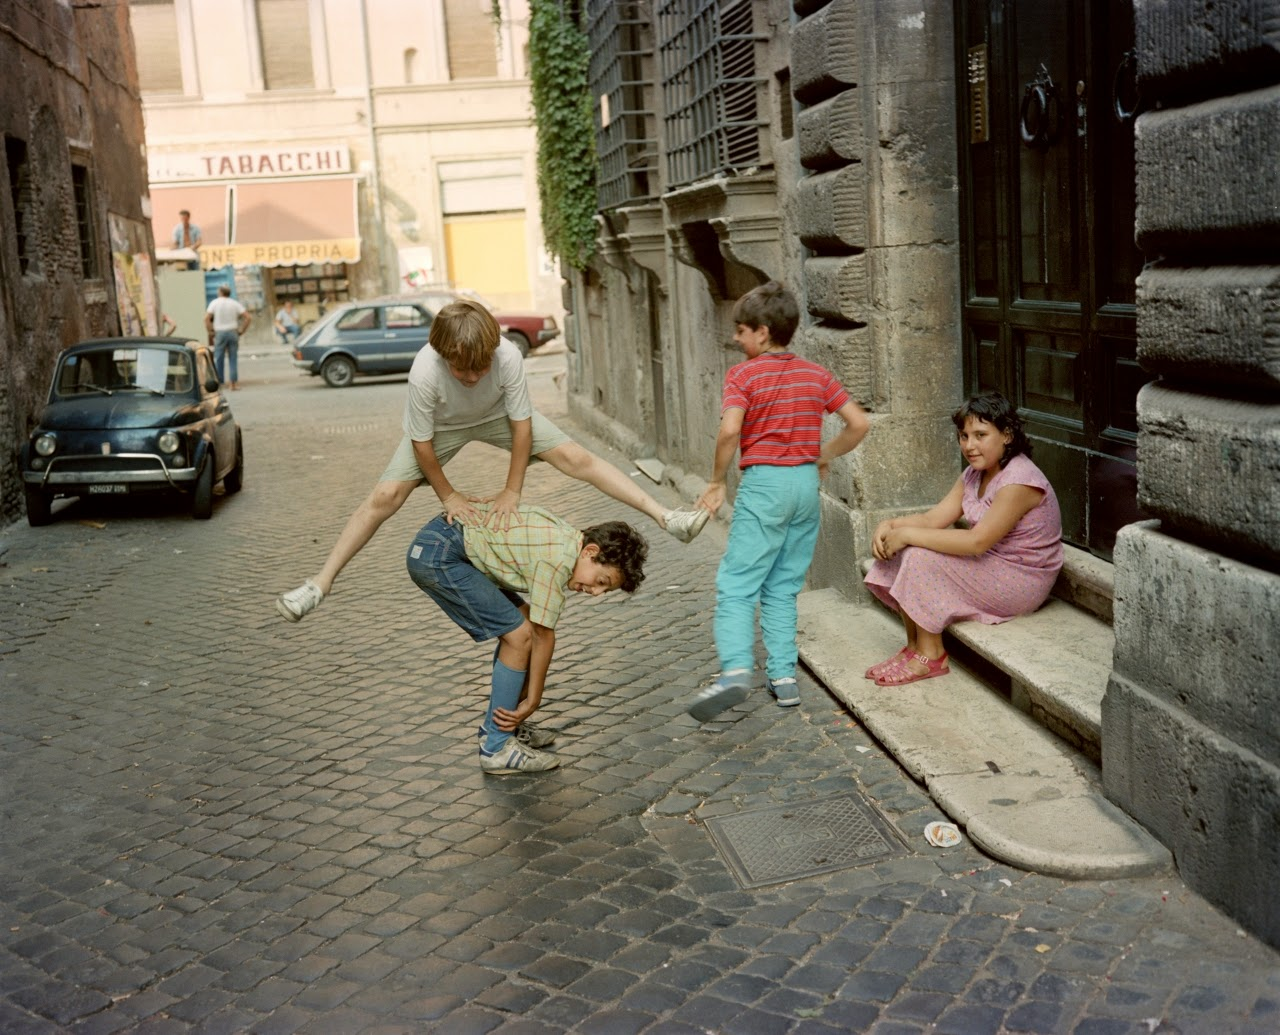 15 Wonderful Color Photographs Captured Everyday Life in Italy in the Early 1980s  vintage everyday